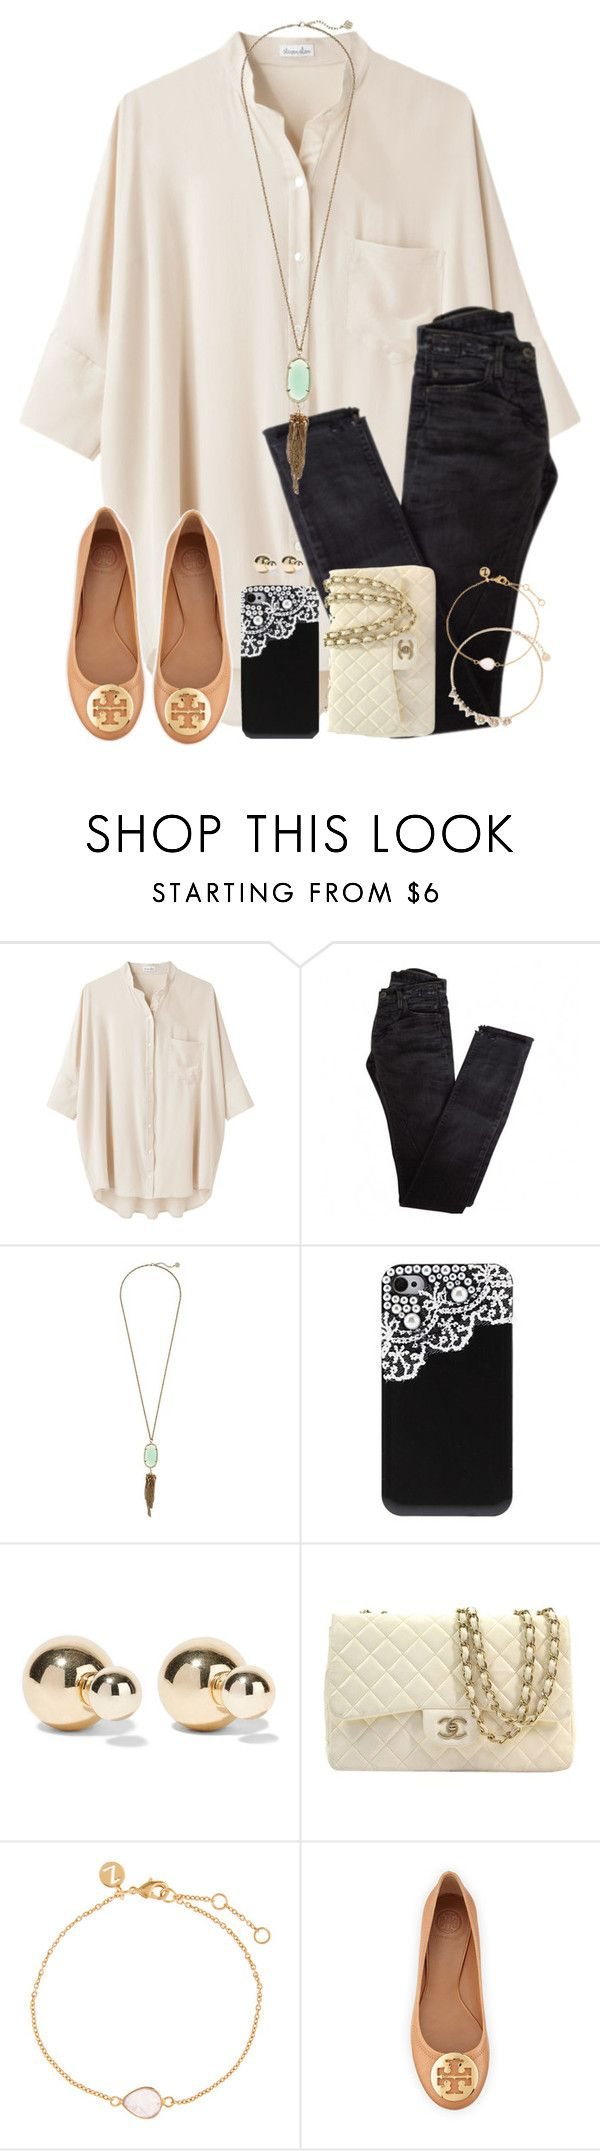 """""""No School Again Today, But Then There's Tomorrow...😒😕"""" by twaayy ❤ liked on Polyvore featuring Steven Alan, Rick Owens, Kendra Scott, Kenneth Jay Lane, Chanel, Accessorize, Tory Burch and Anton Heunis"""